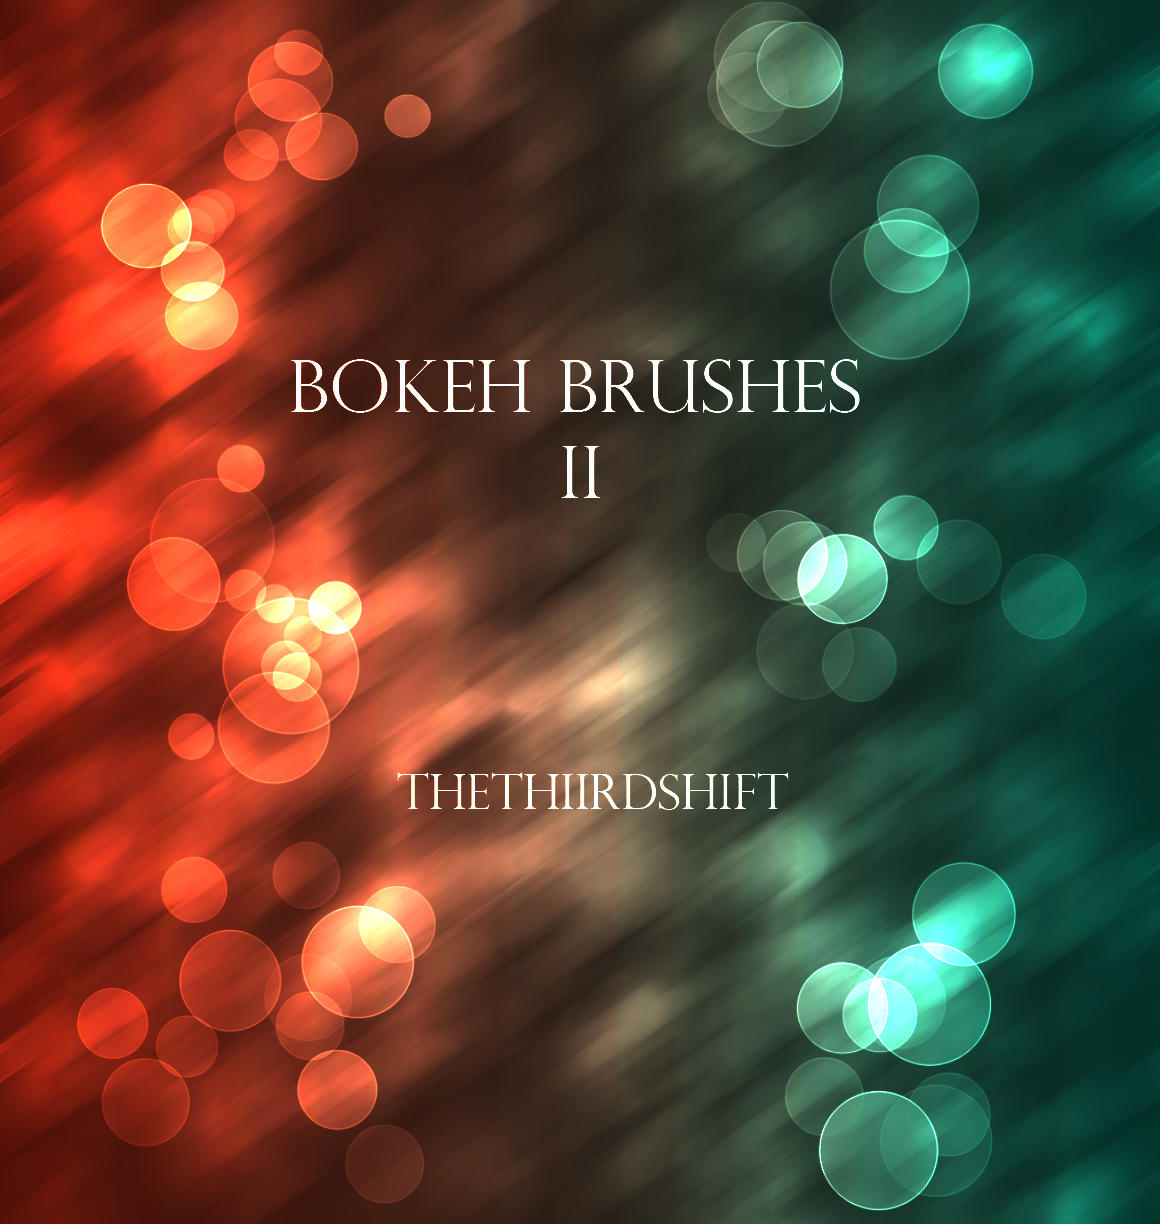 Bokeh Brushes II by thethiirdshift